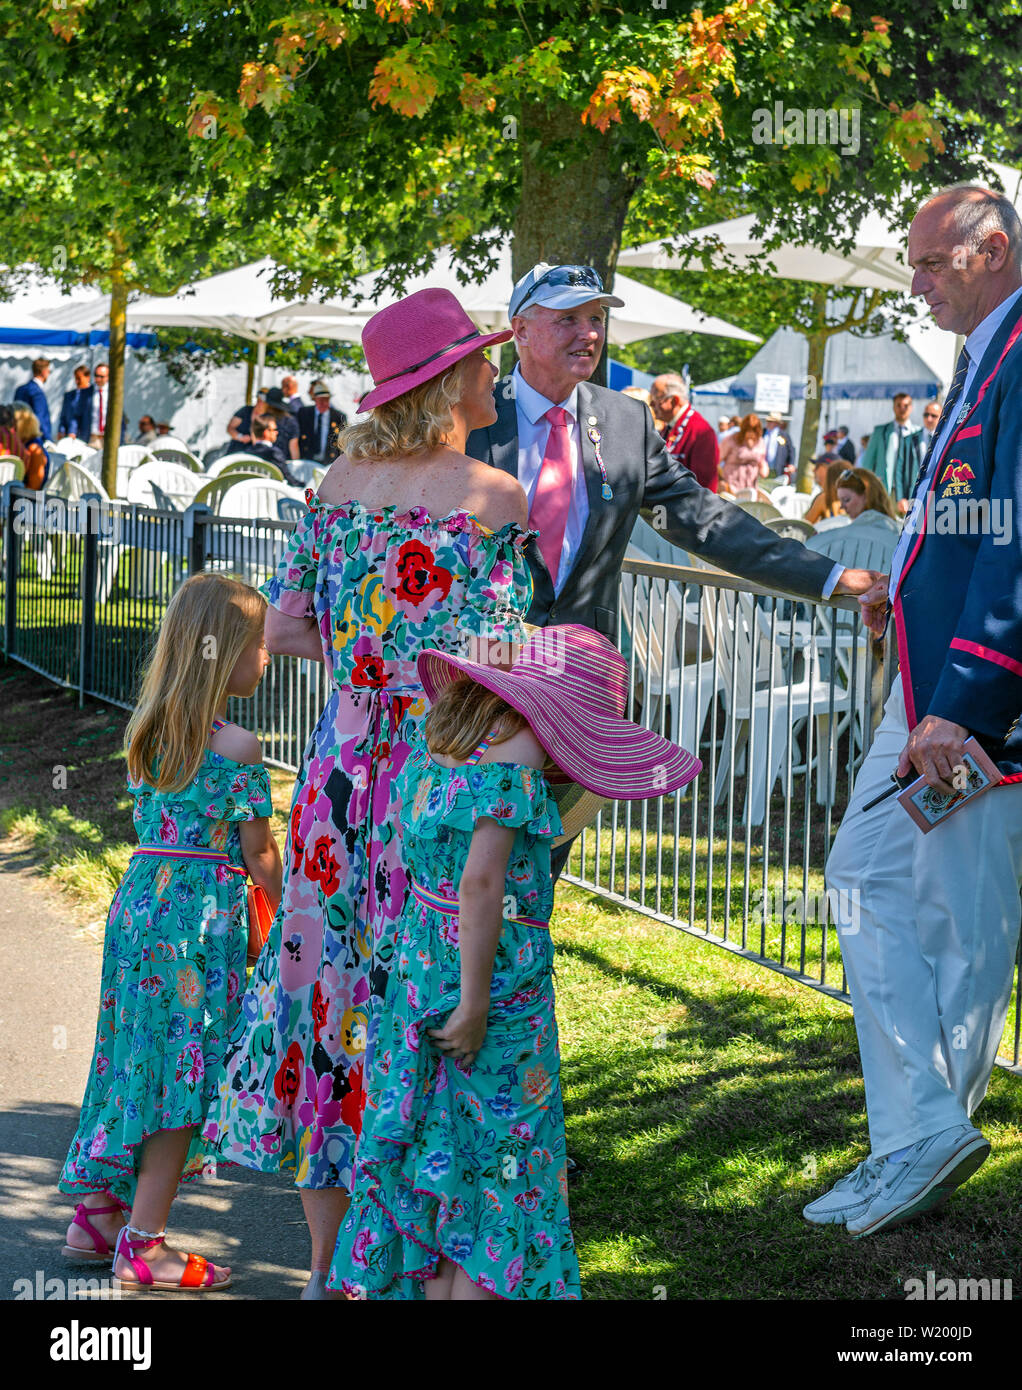 Henley on Thames, Berkshire, UK. 4th July, 2019. Henley Royal Regatta. Former Olympian and Henley Royal Regatta's chairman, Sir Steve  Redgrave .talks to collegue and friends outside the Stewards Enclosure  . Credit Gary Blake/Alamy Live - Stock Image